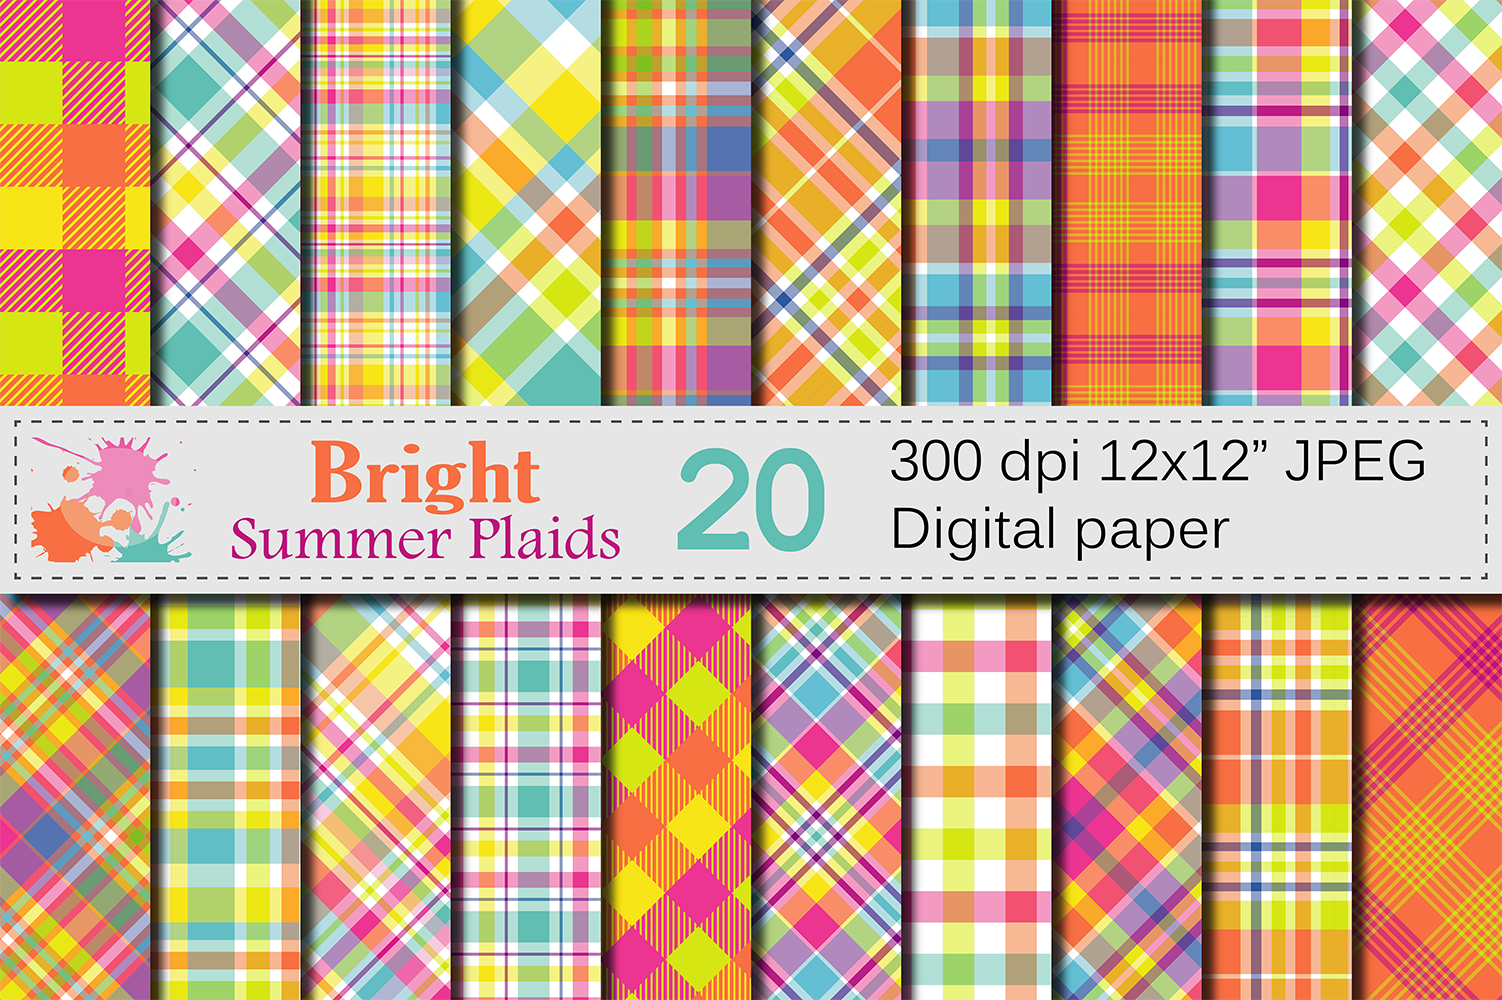 Bright Summer Plaid Digital Paper / Summer Multicolored Plaid Backgrounds / Orange and Yellow Plaid Patterns Graphic Backgrounds By VR Digital Design